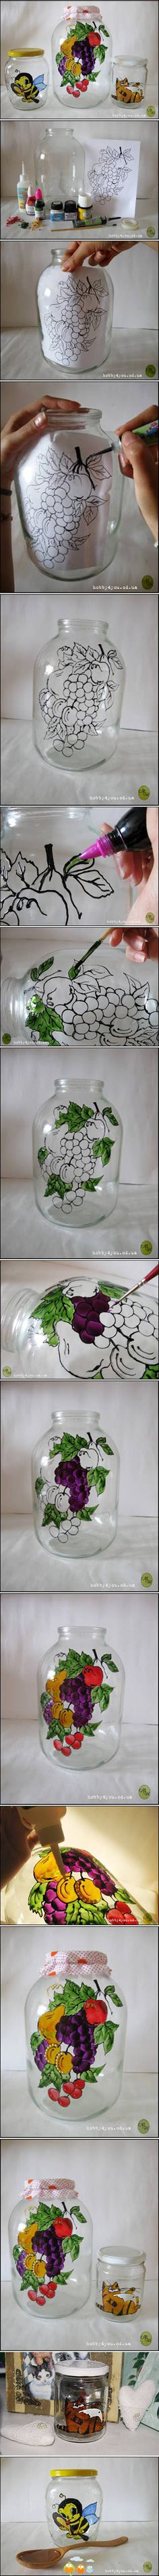 glass bottles and jars DIY Jar Art diy crafts craft ideas easy crafts diy ideas diy idea diy home easy diy diy art for the home crafty decor home ideas diy decorations